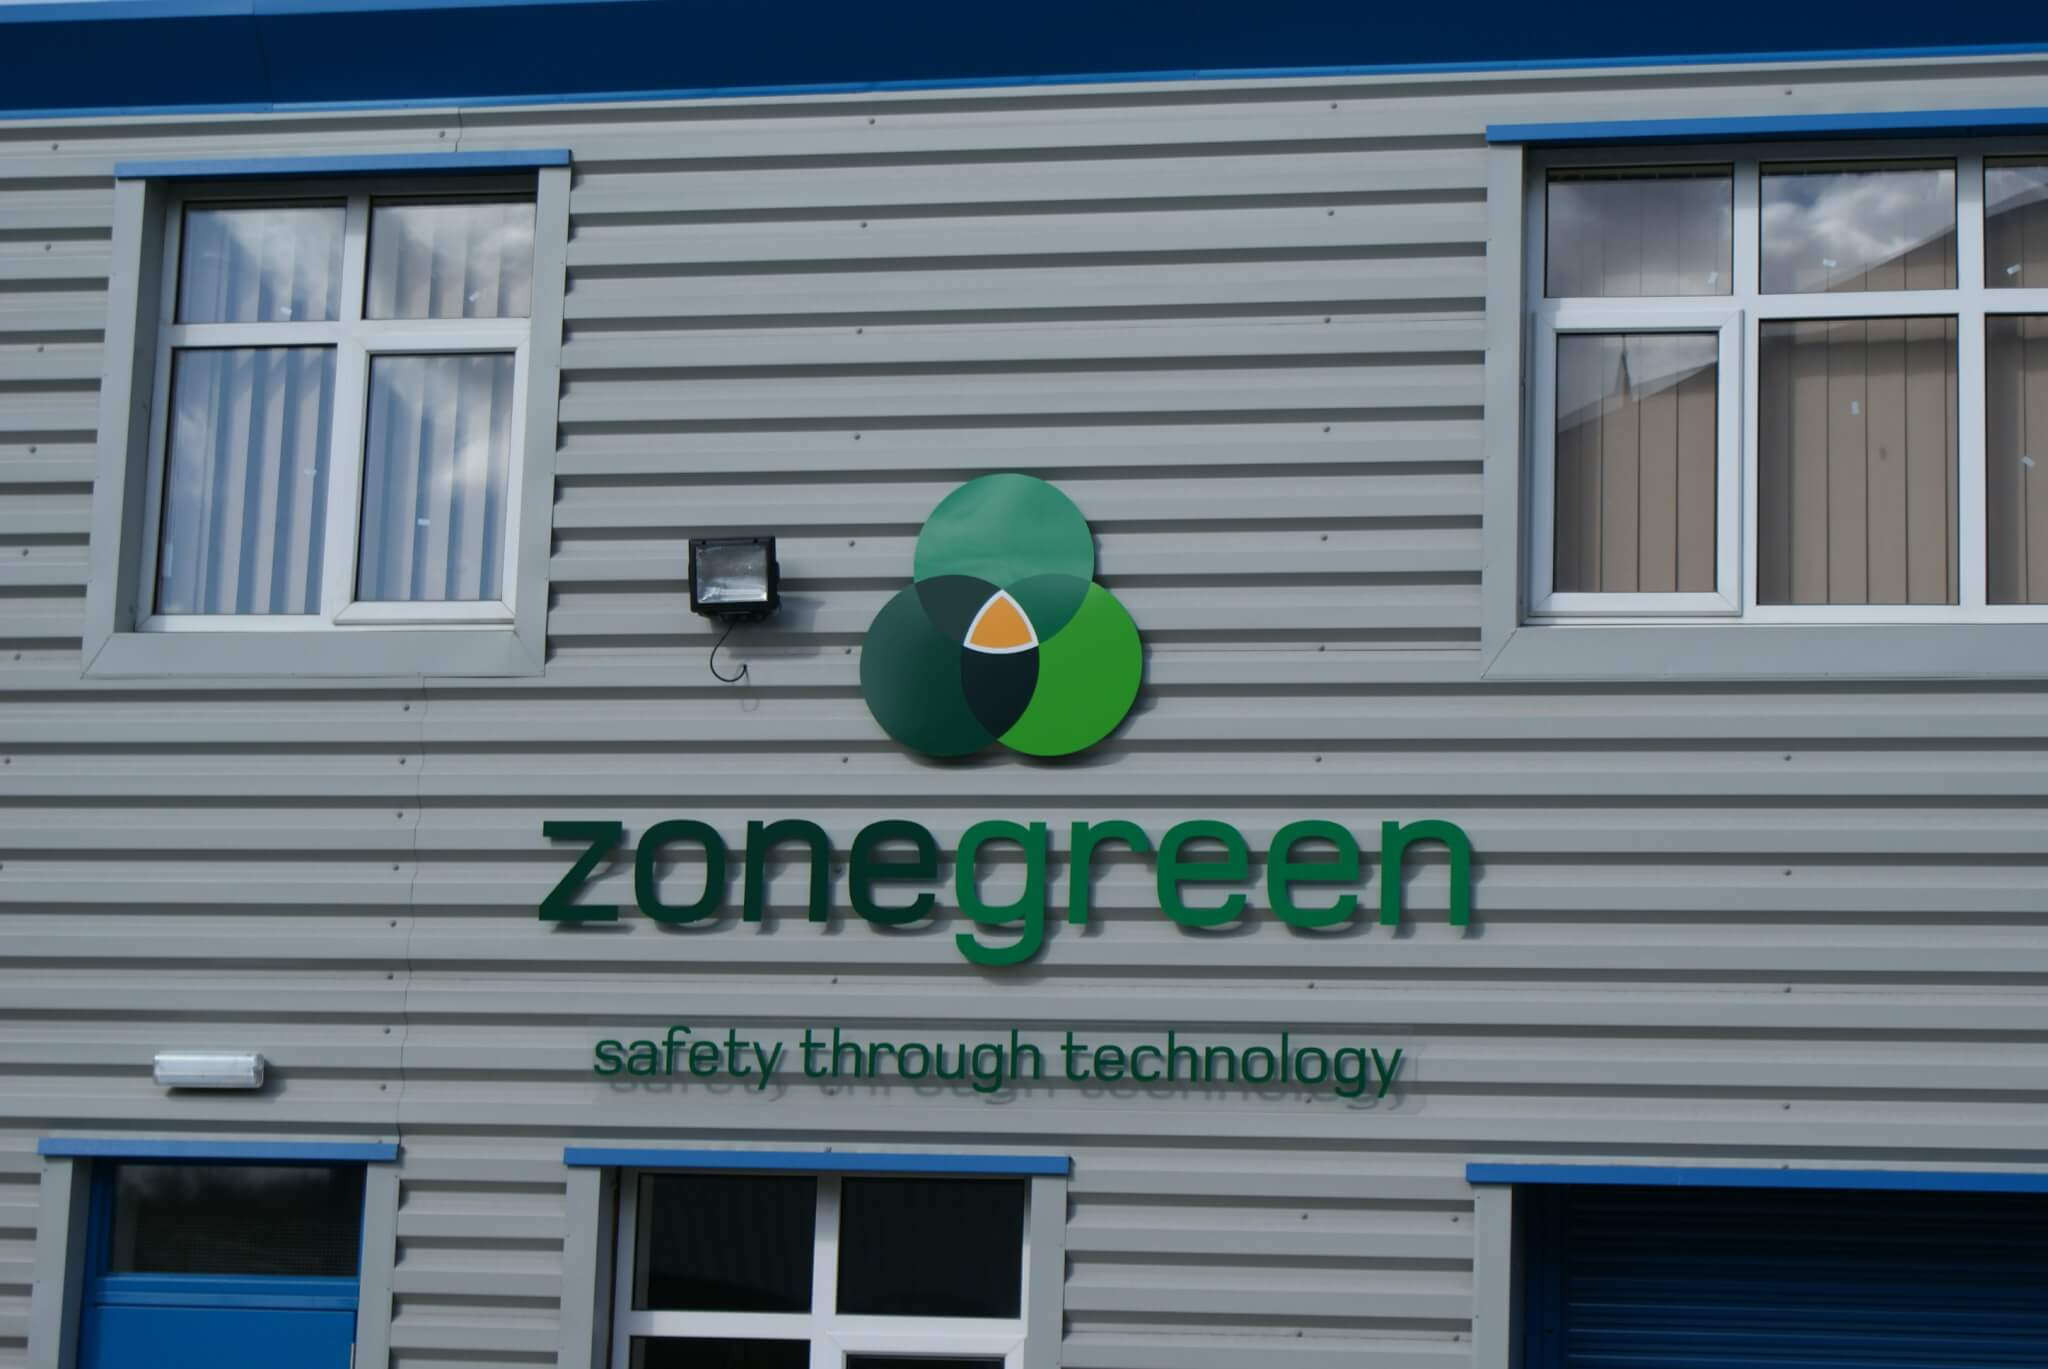 Zonegreen Office